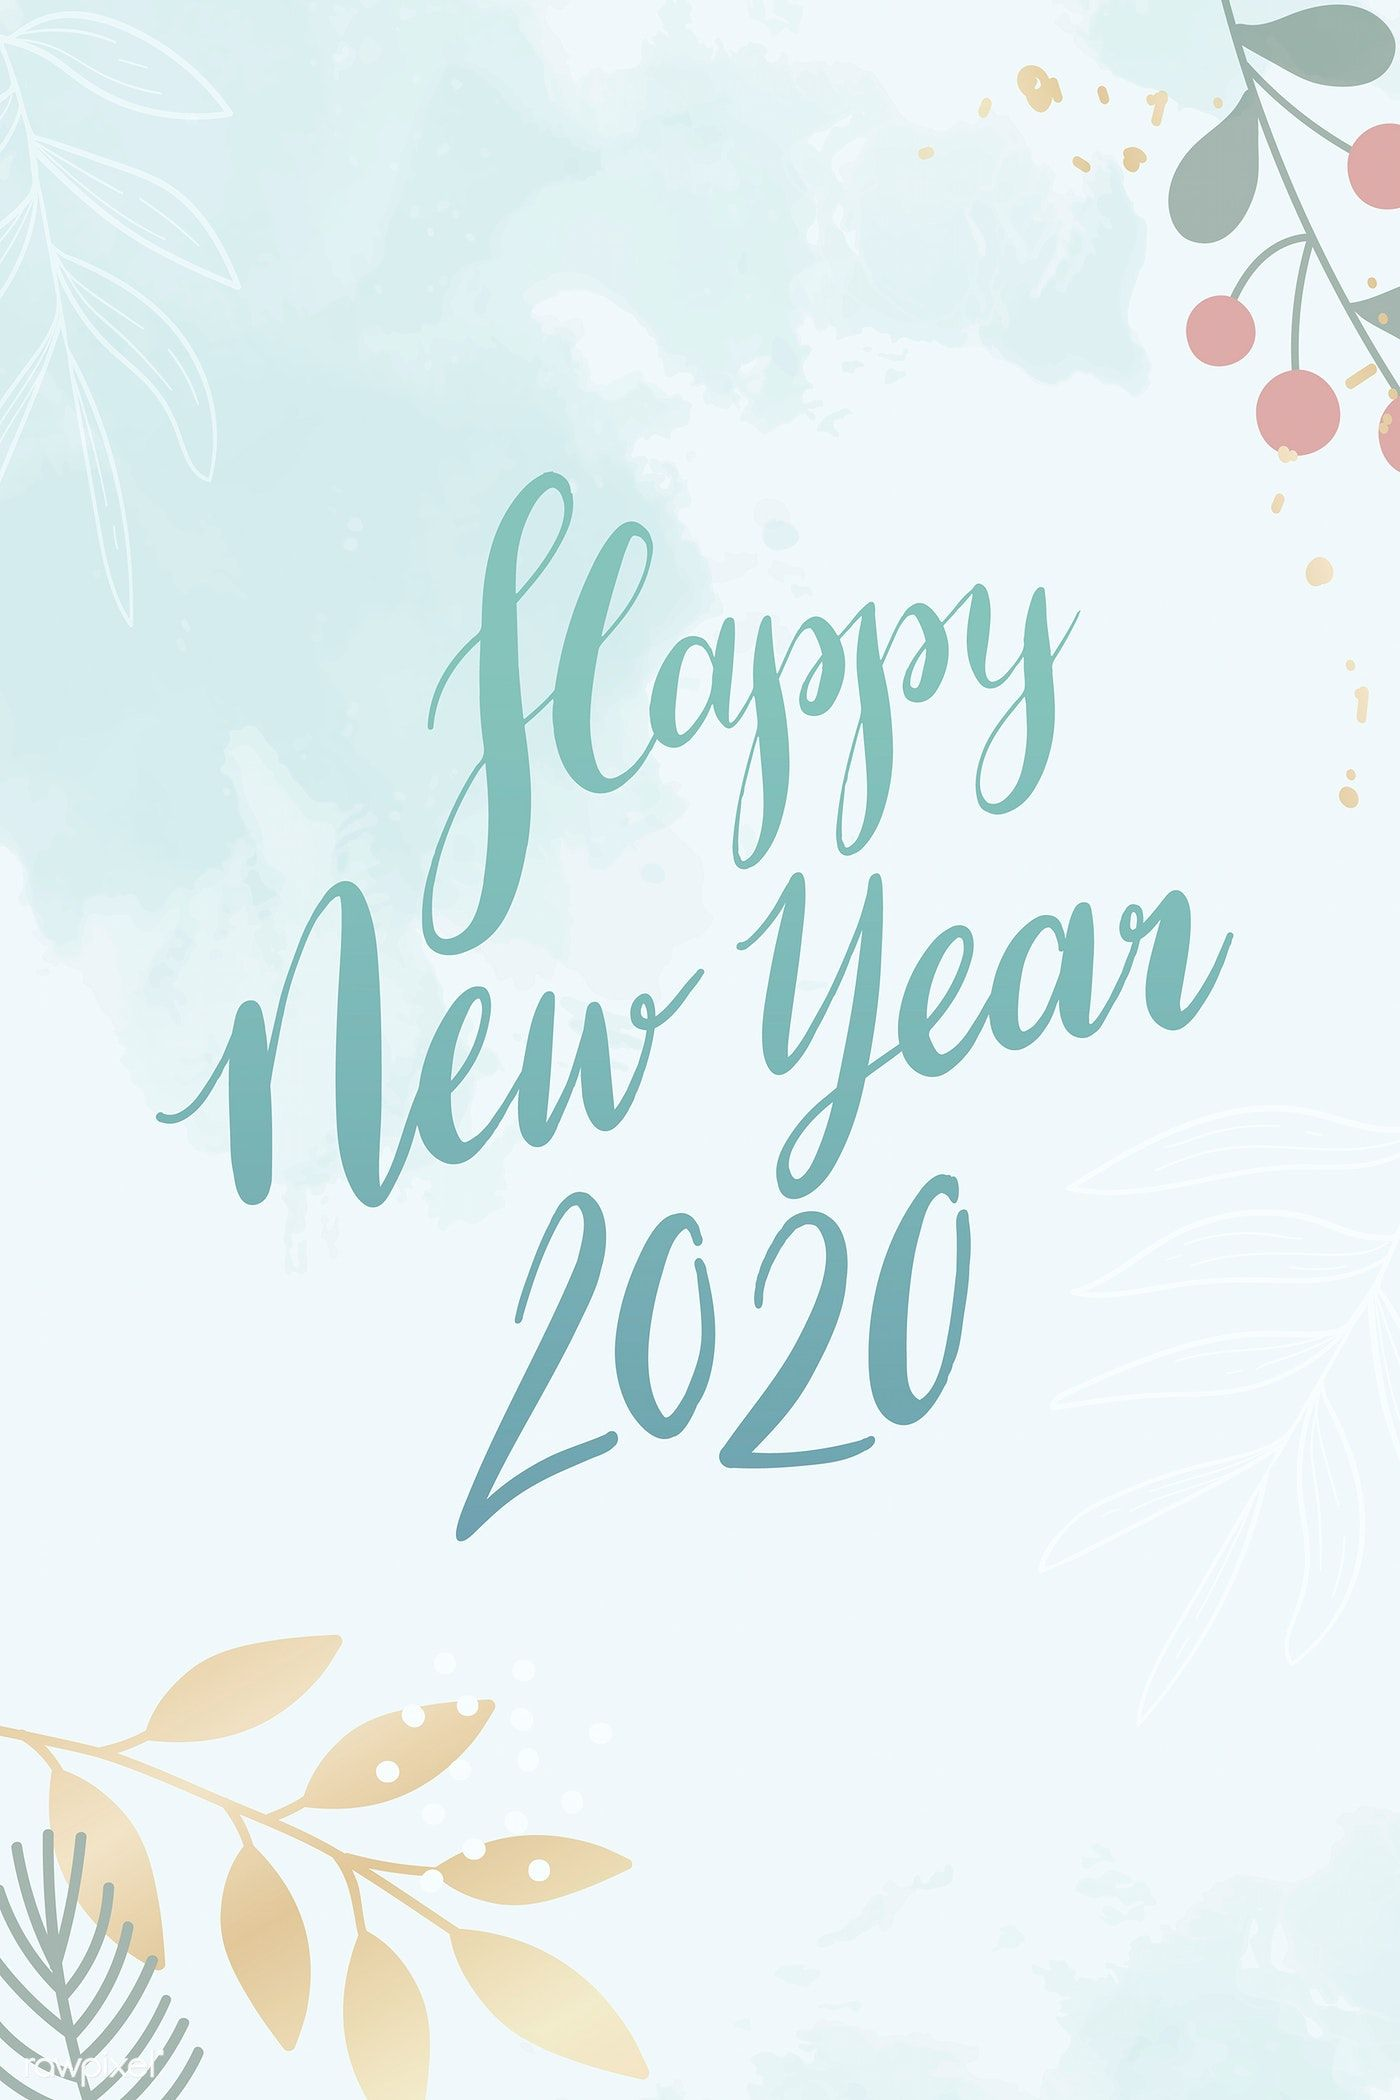 Happy New Year 2020 Card Vector Premium Image By Rawpixel Com Kappy Kappy Happy New Year Calligraphy Happy New Year Background New Year Background Images